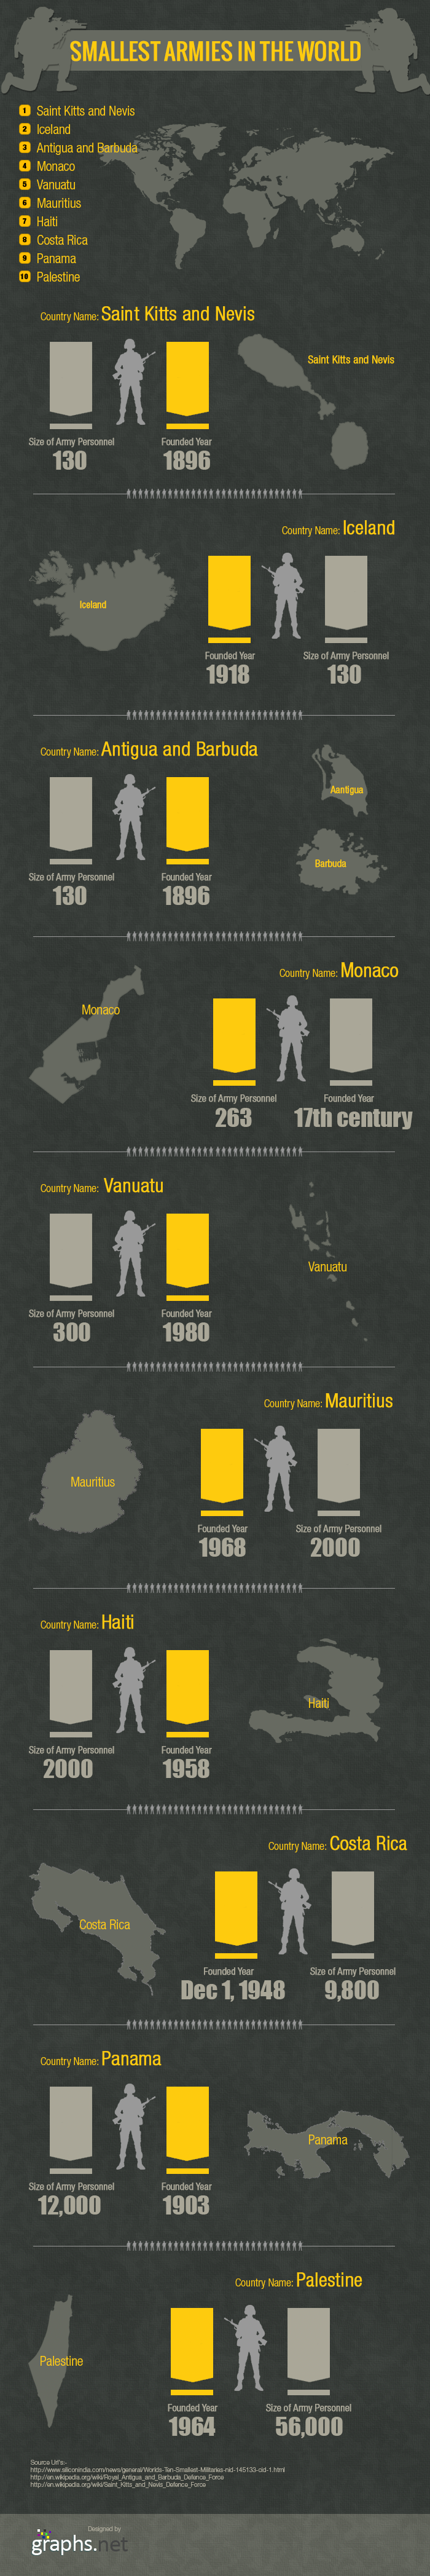 Smallest-armies-in-the-world